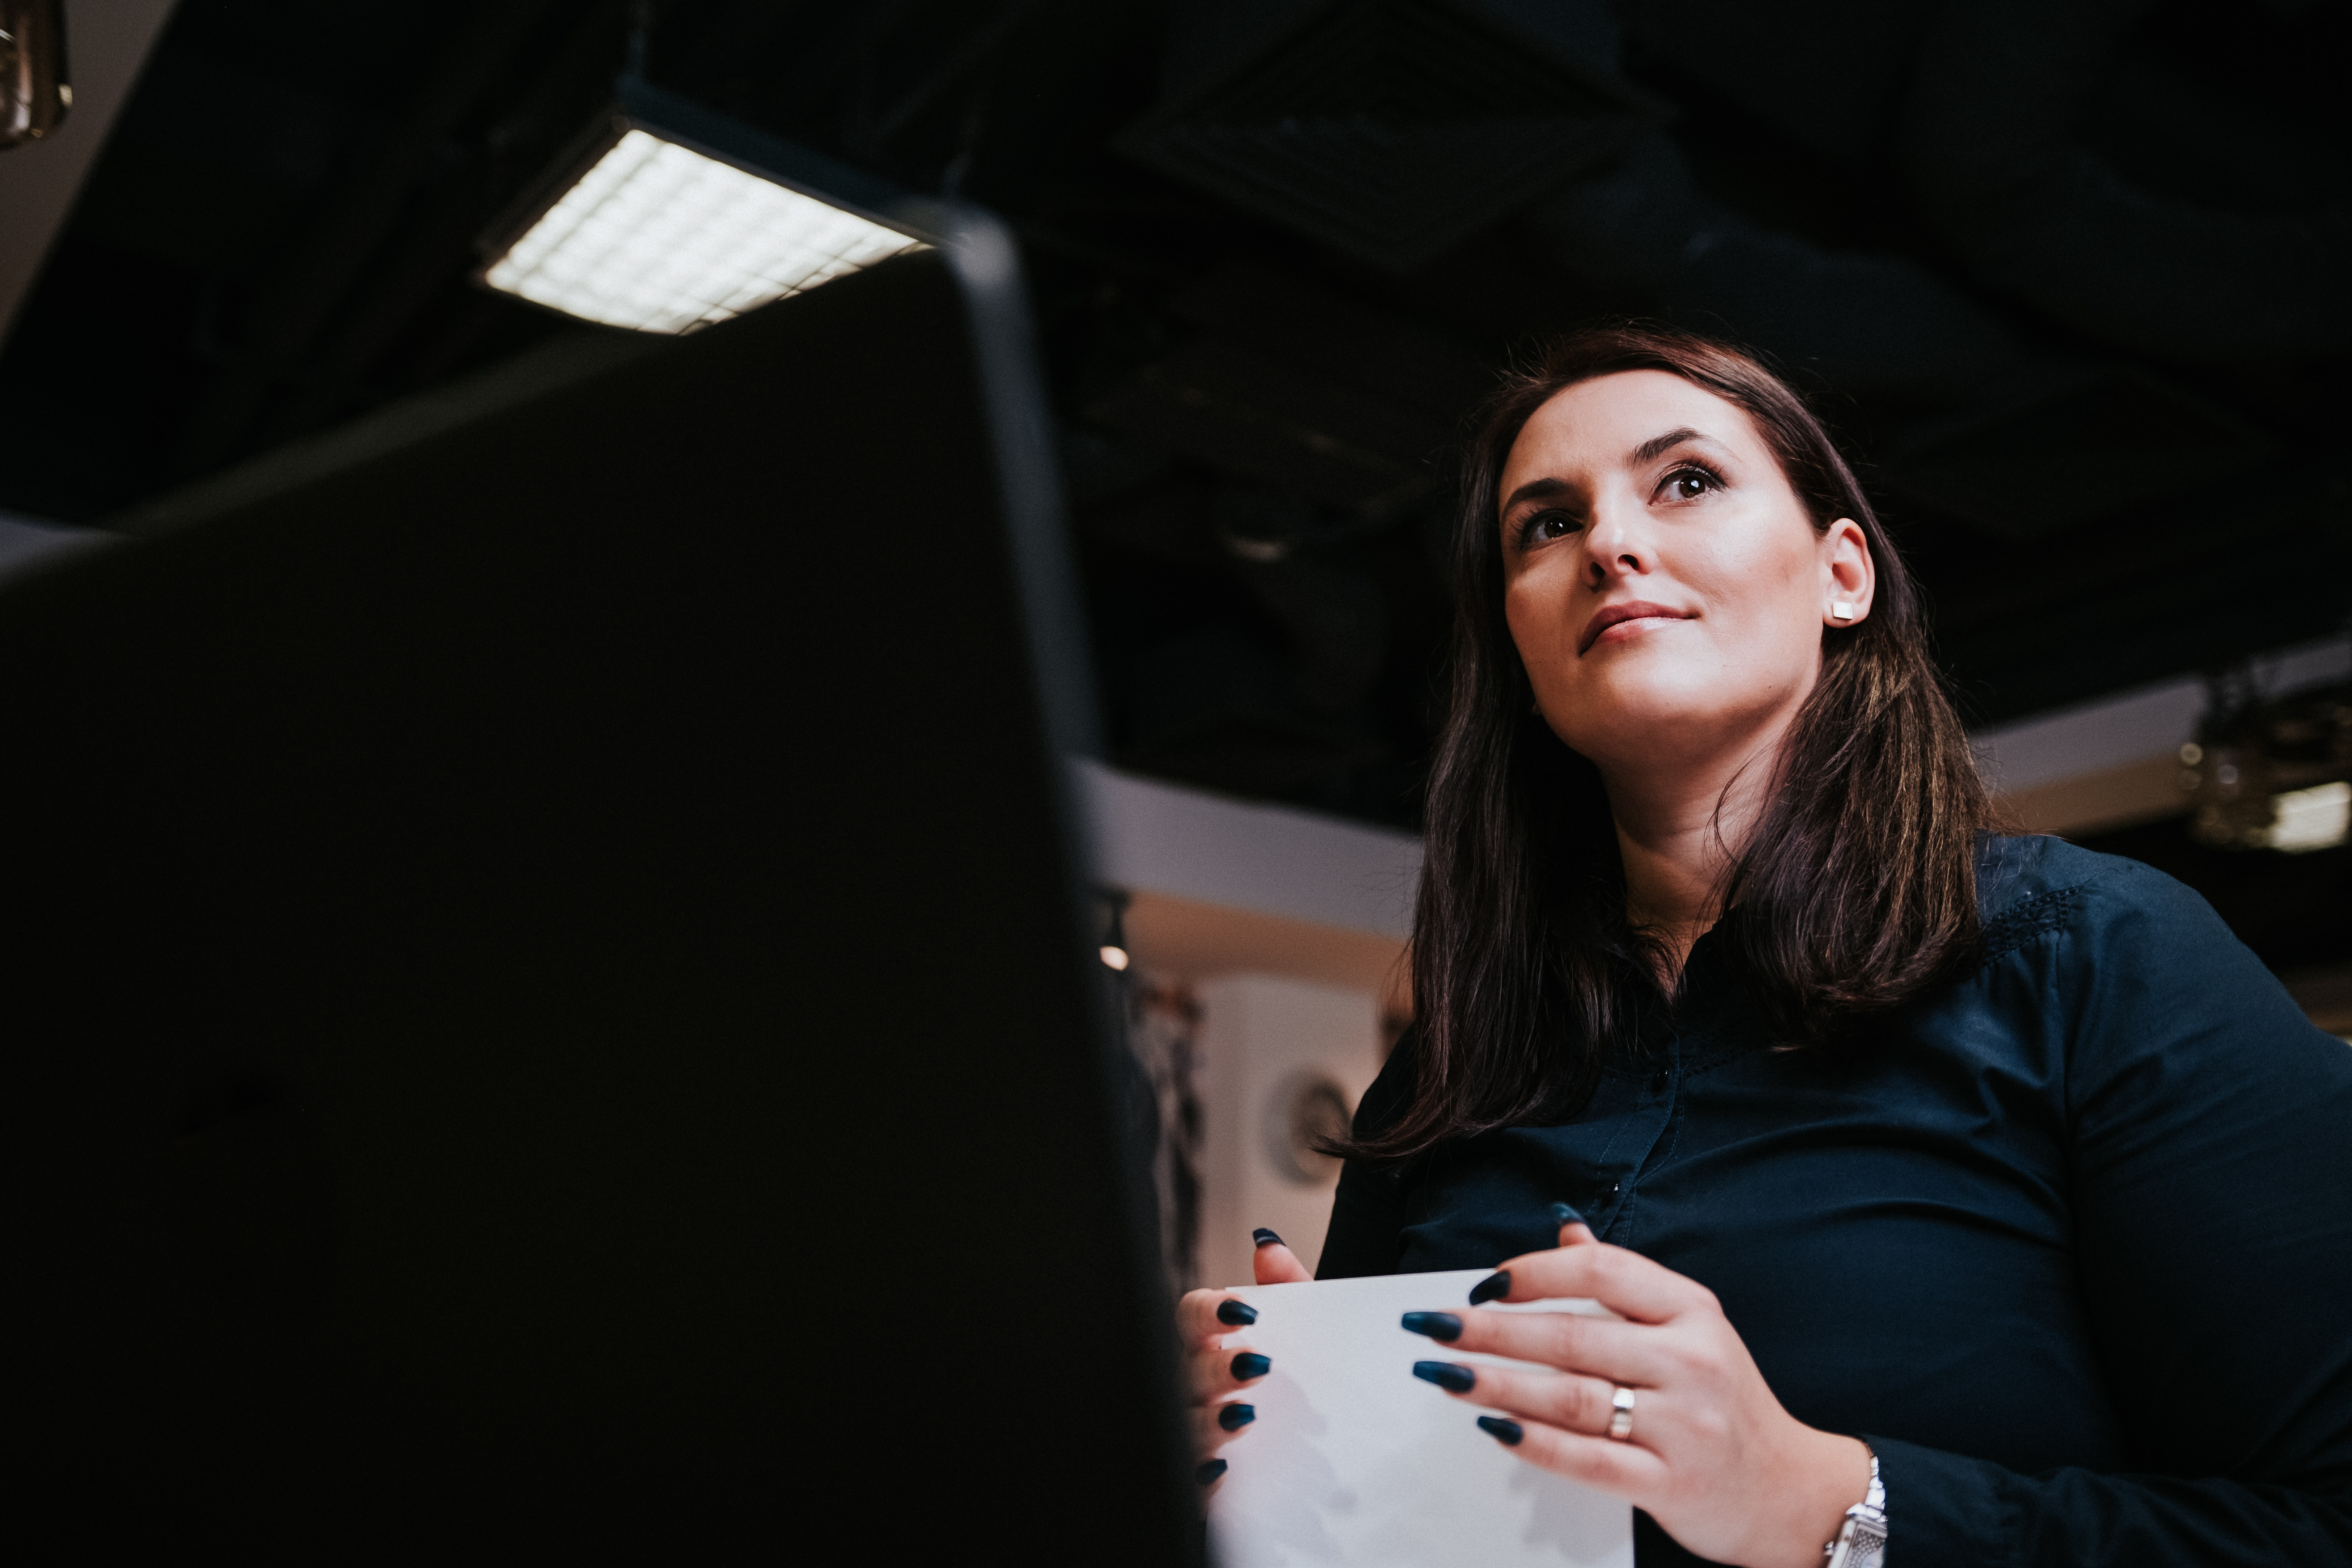 Woman in office looks away confidently